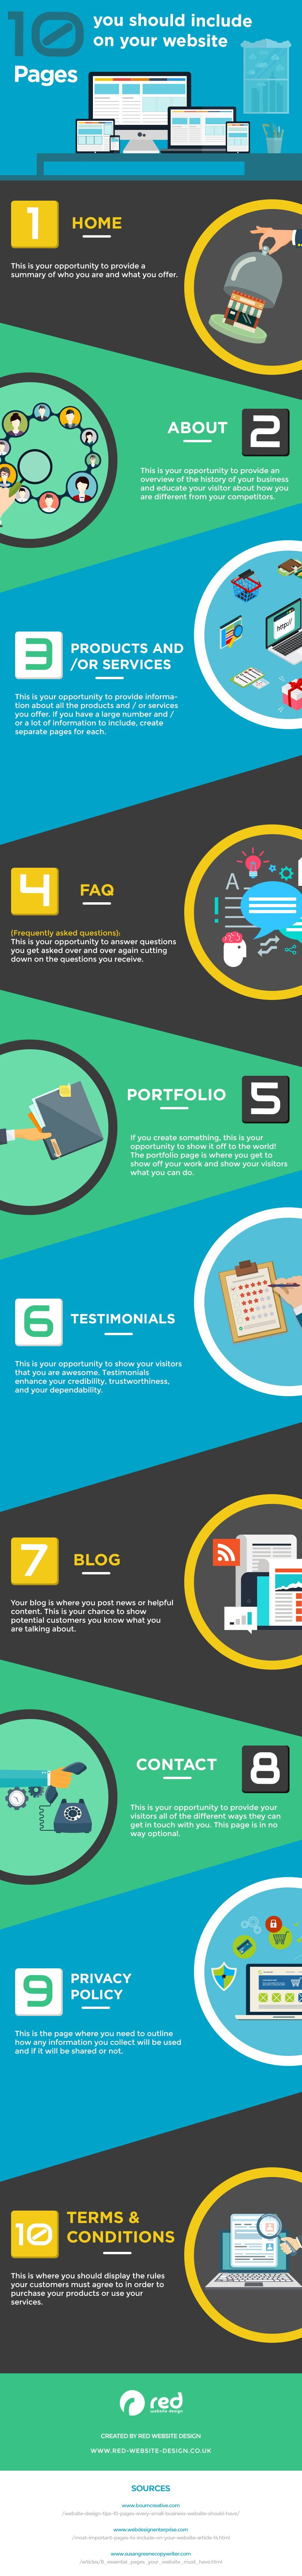 Creating a New Website? Make Sure You Include These 10 Pages [Infographic]